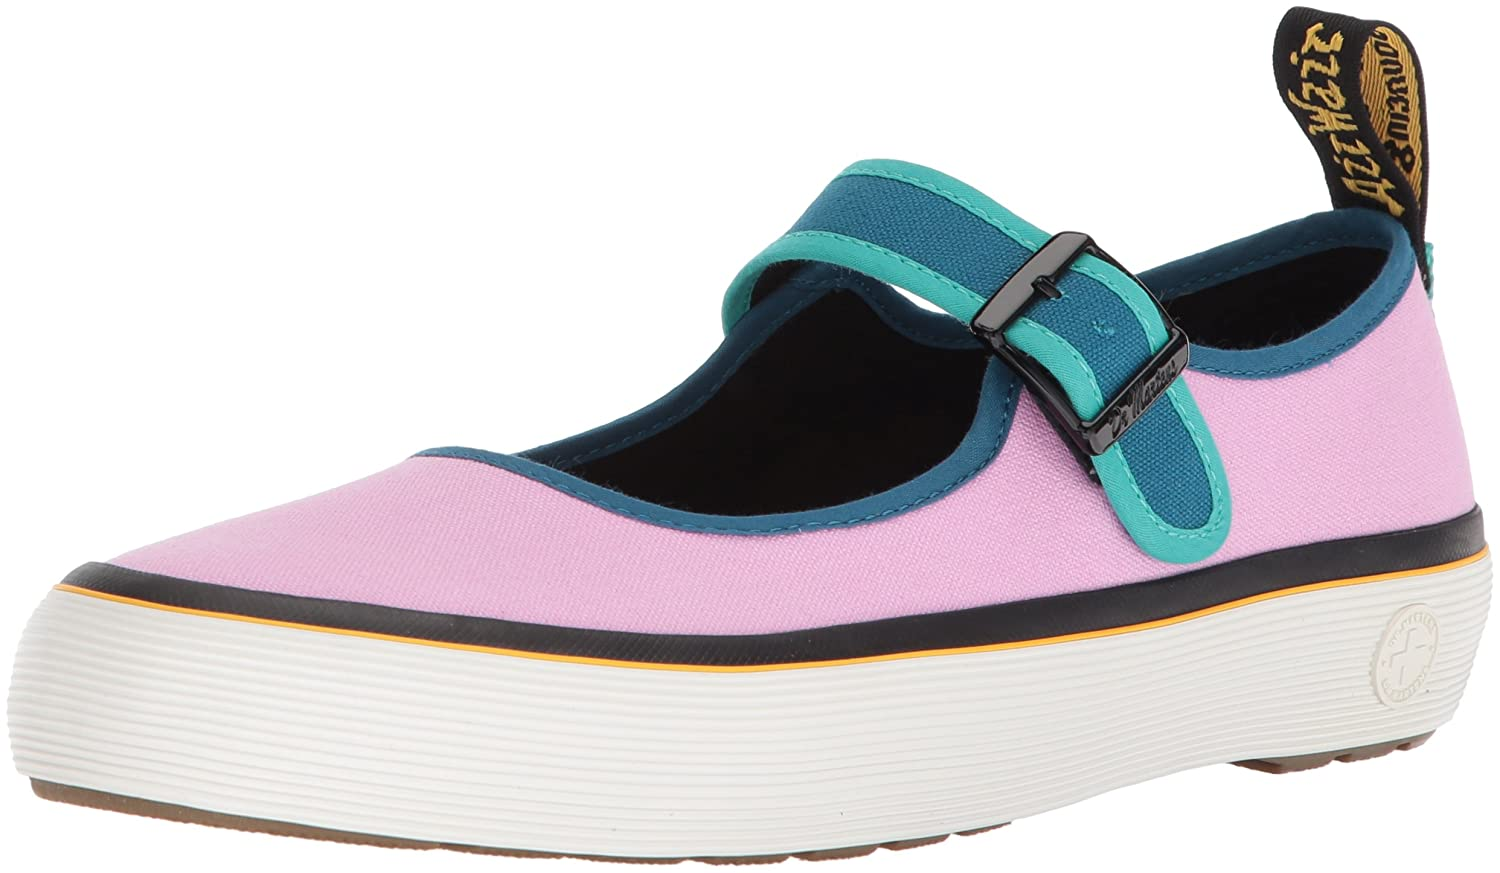 Dr. Martens Women's Florentia Mary Jane Flat B071GN72Q5 5 Medium UK (7 US)|Multi Canvas